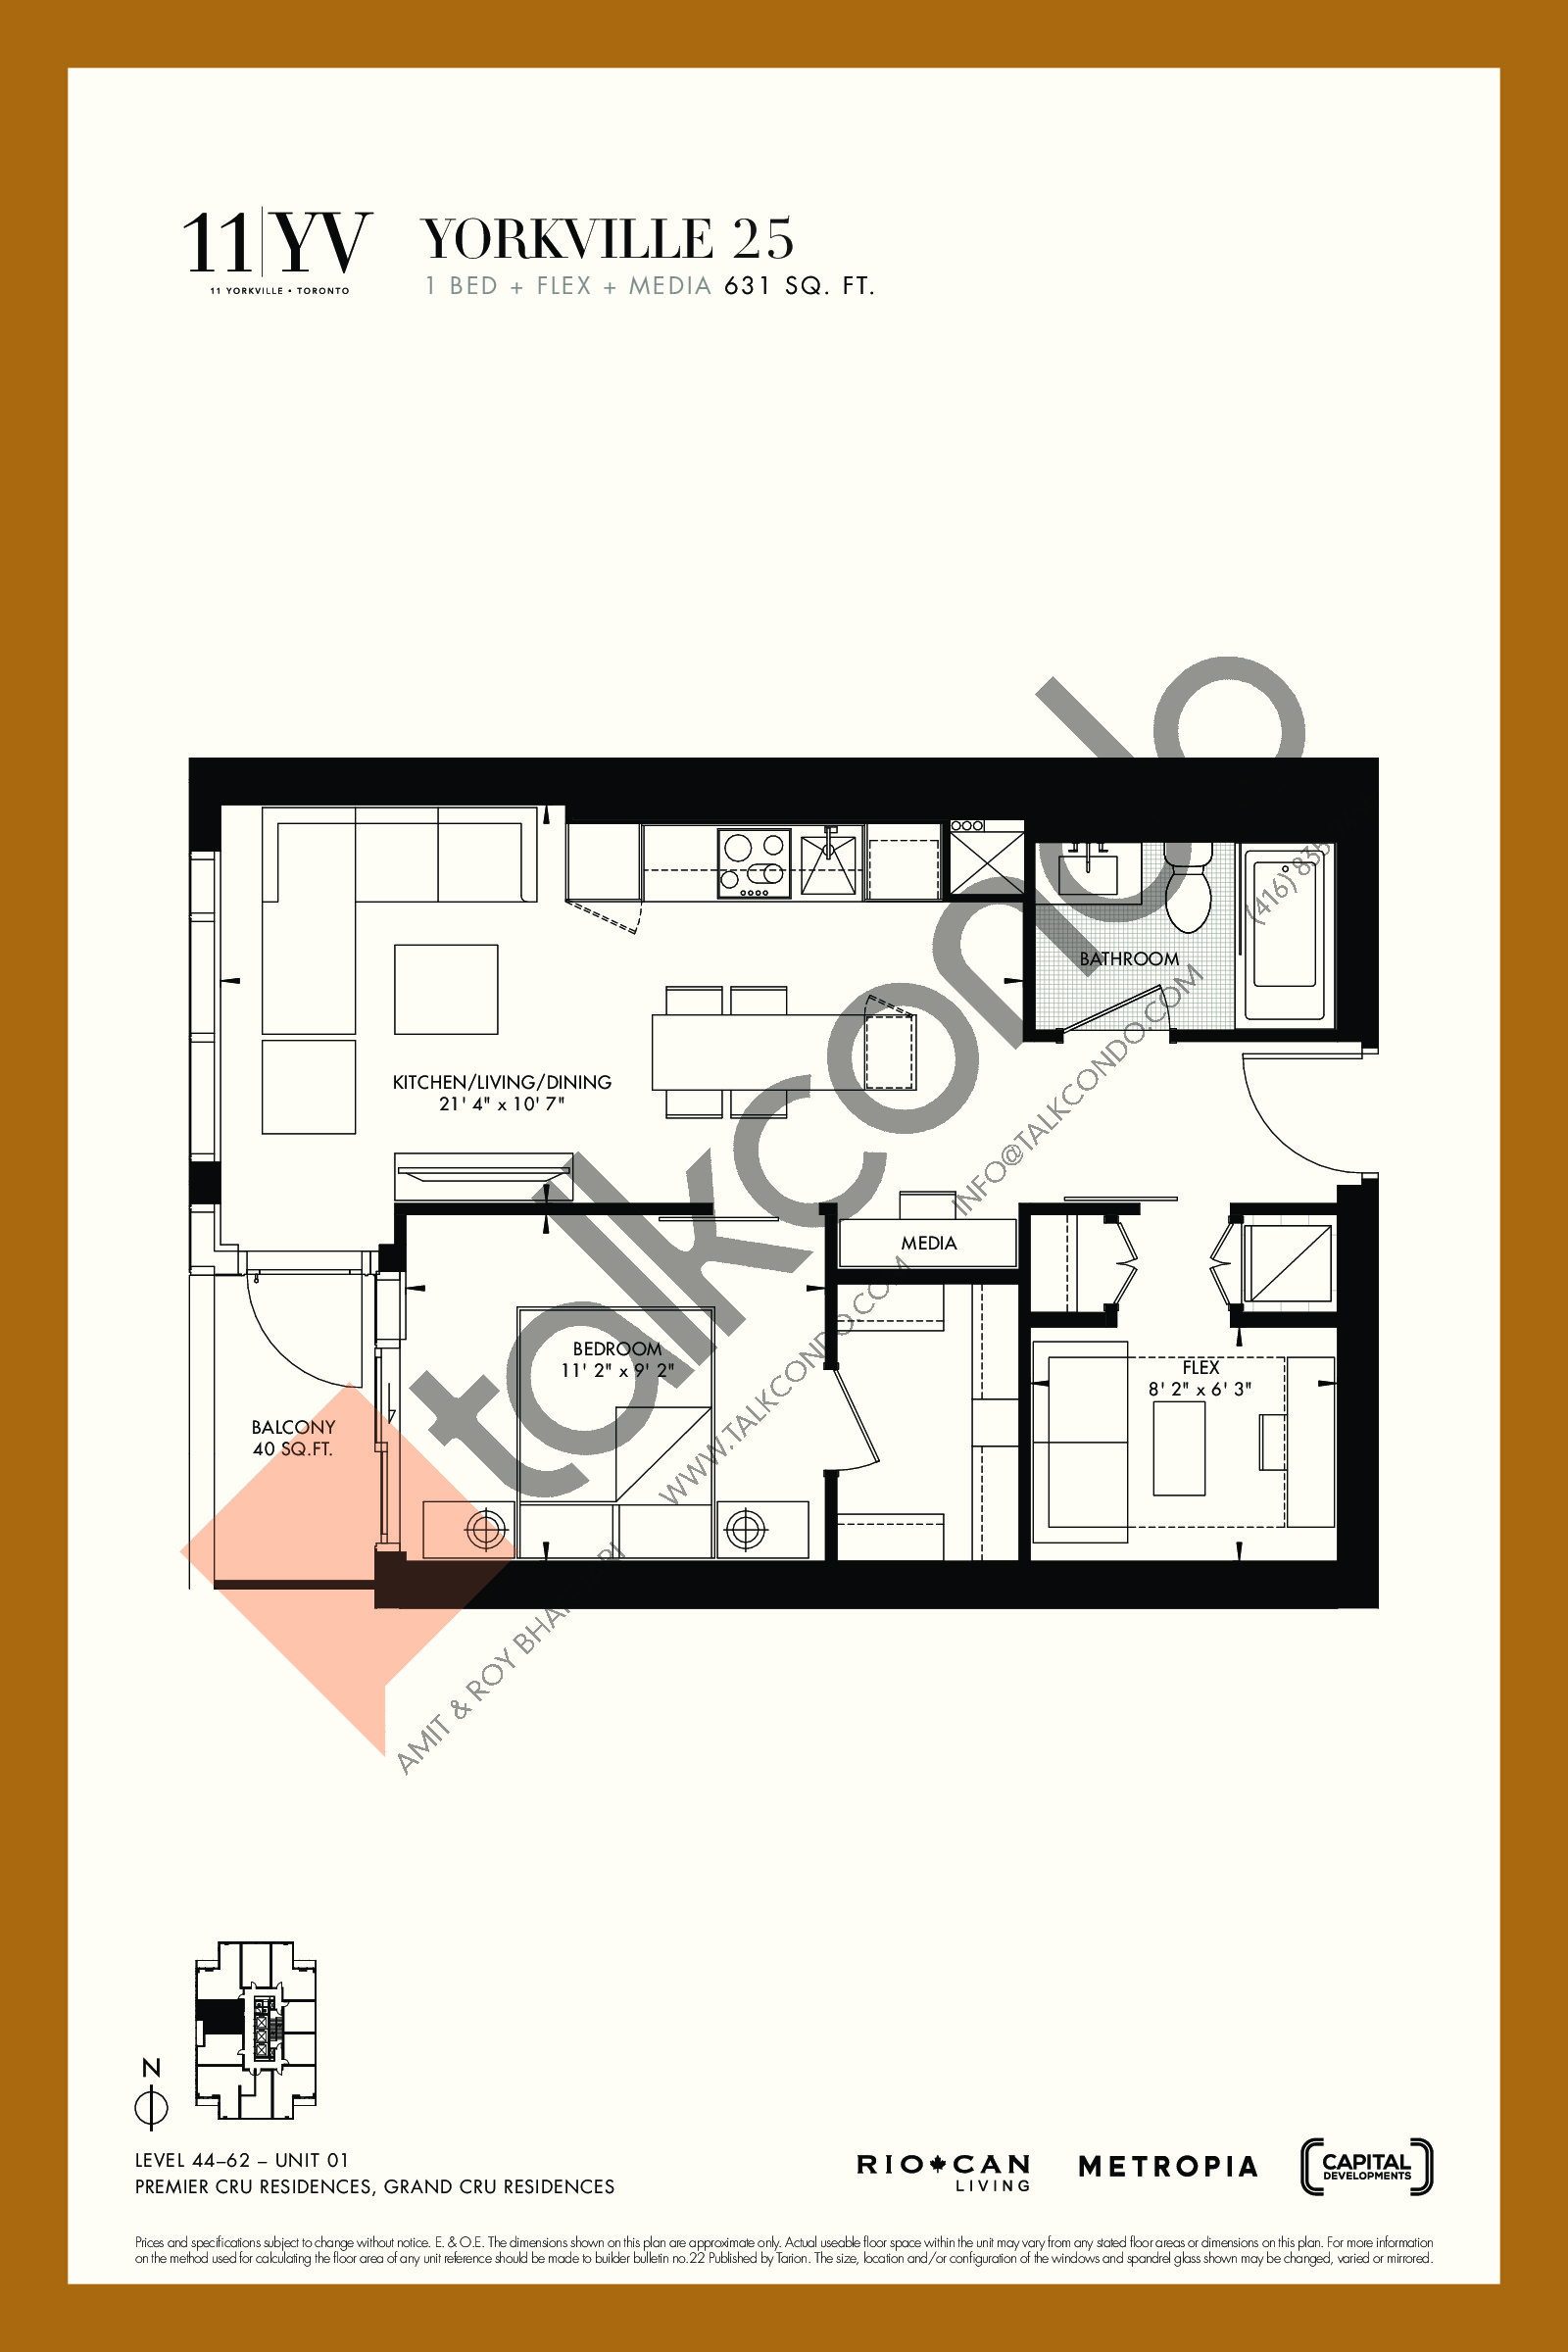 Yorkville 25 Floor Plan at 11YV Condos - 631 sq.ft